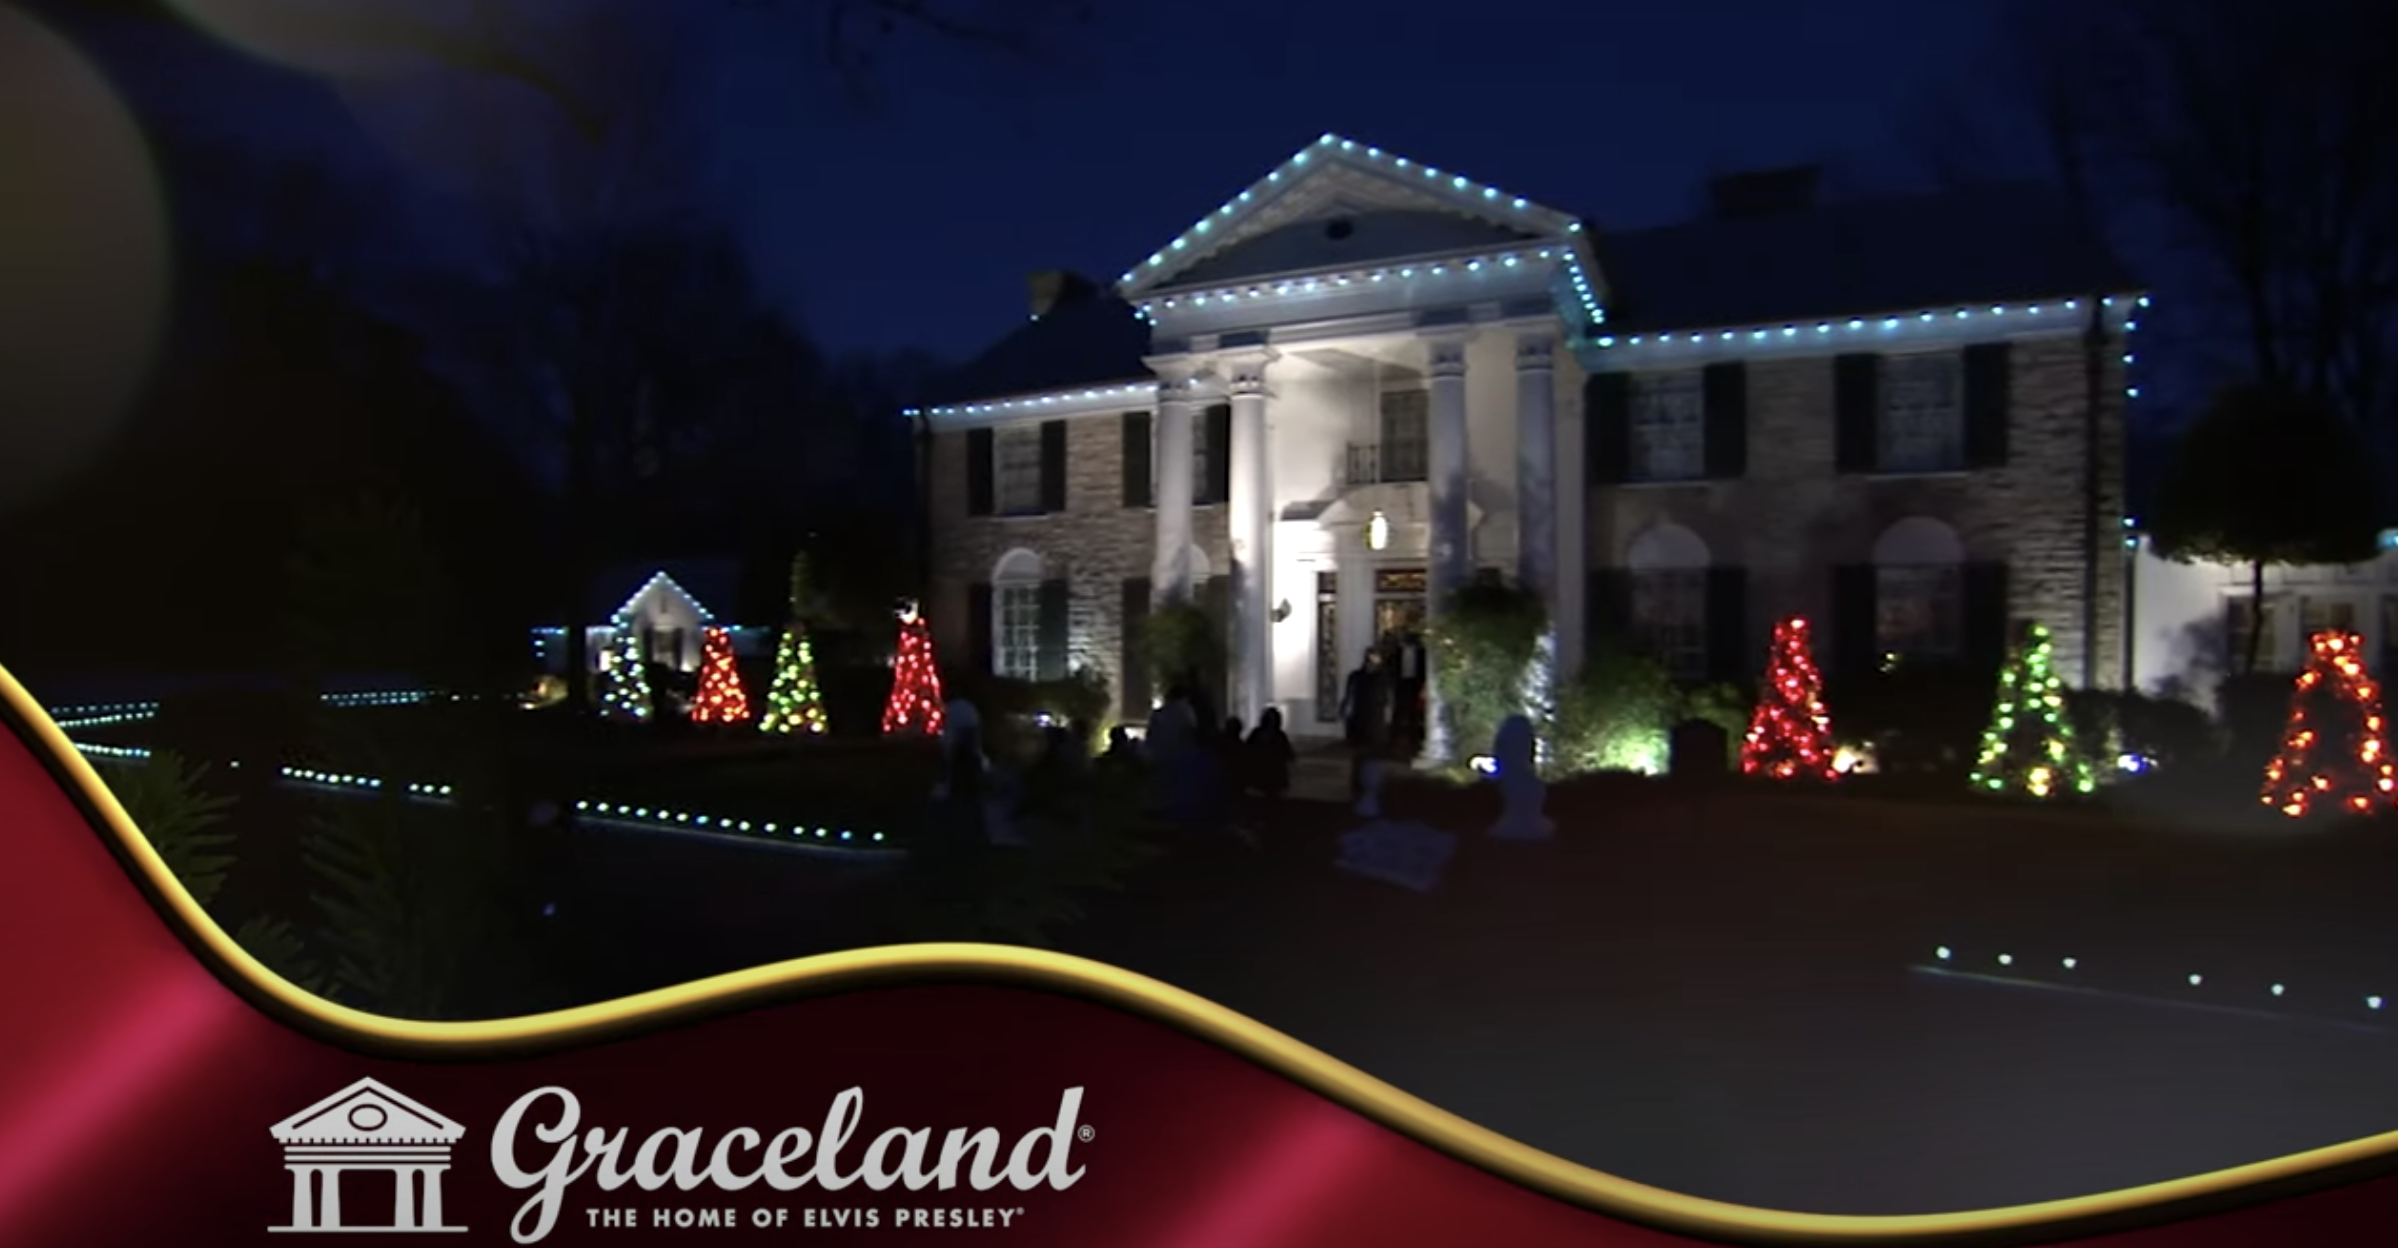 Check Out This New Sneak Peek Video Of A Graceland Christmas